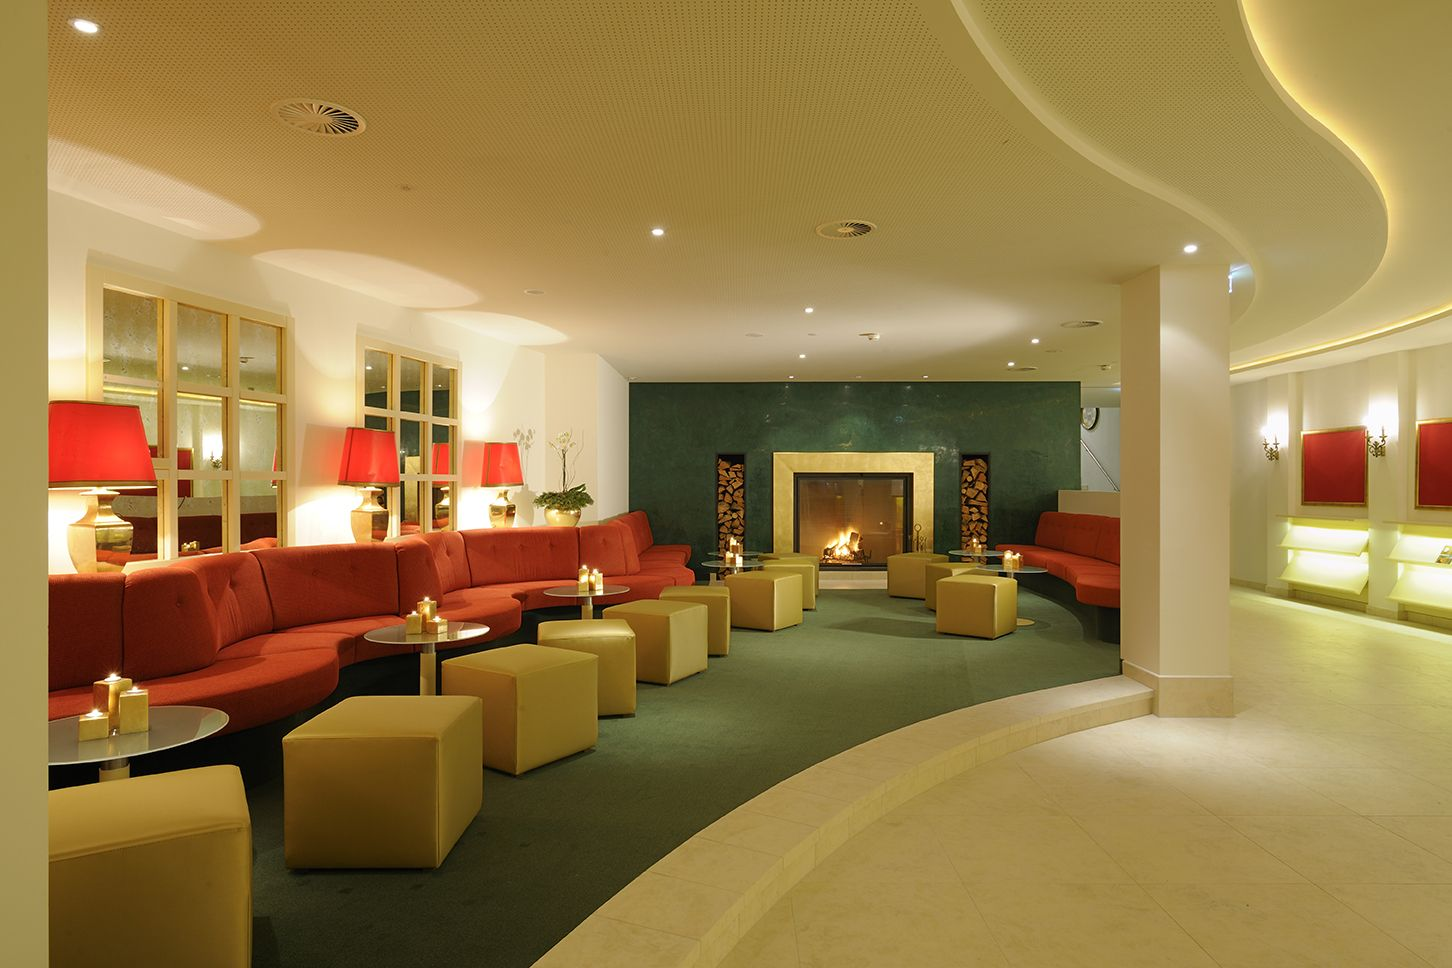 office lobby designs with color - Google Search | work spaces ...